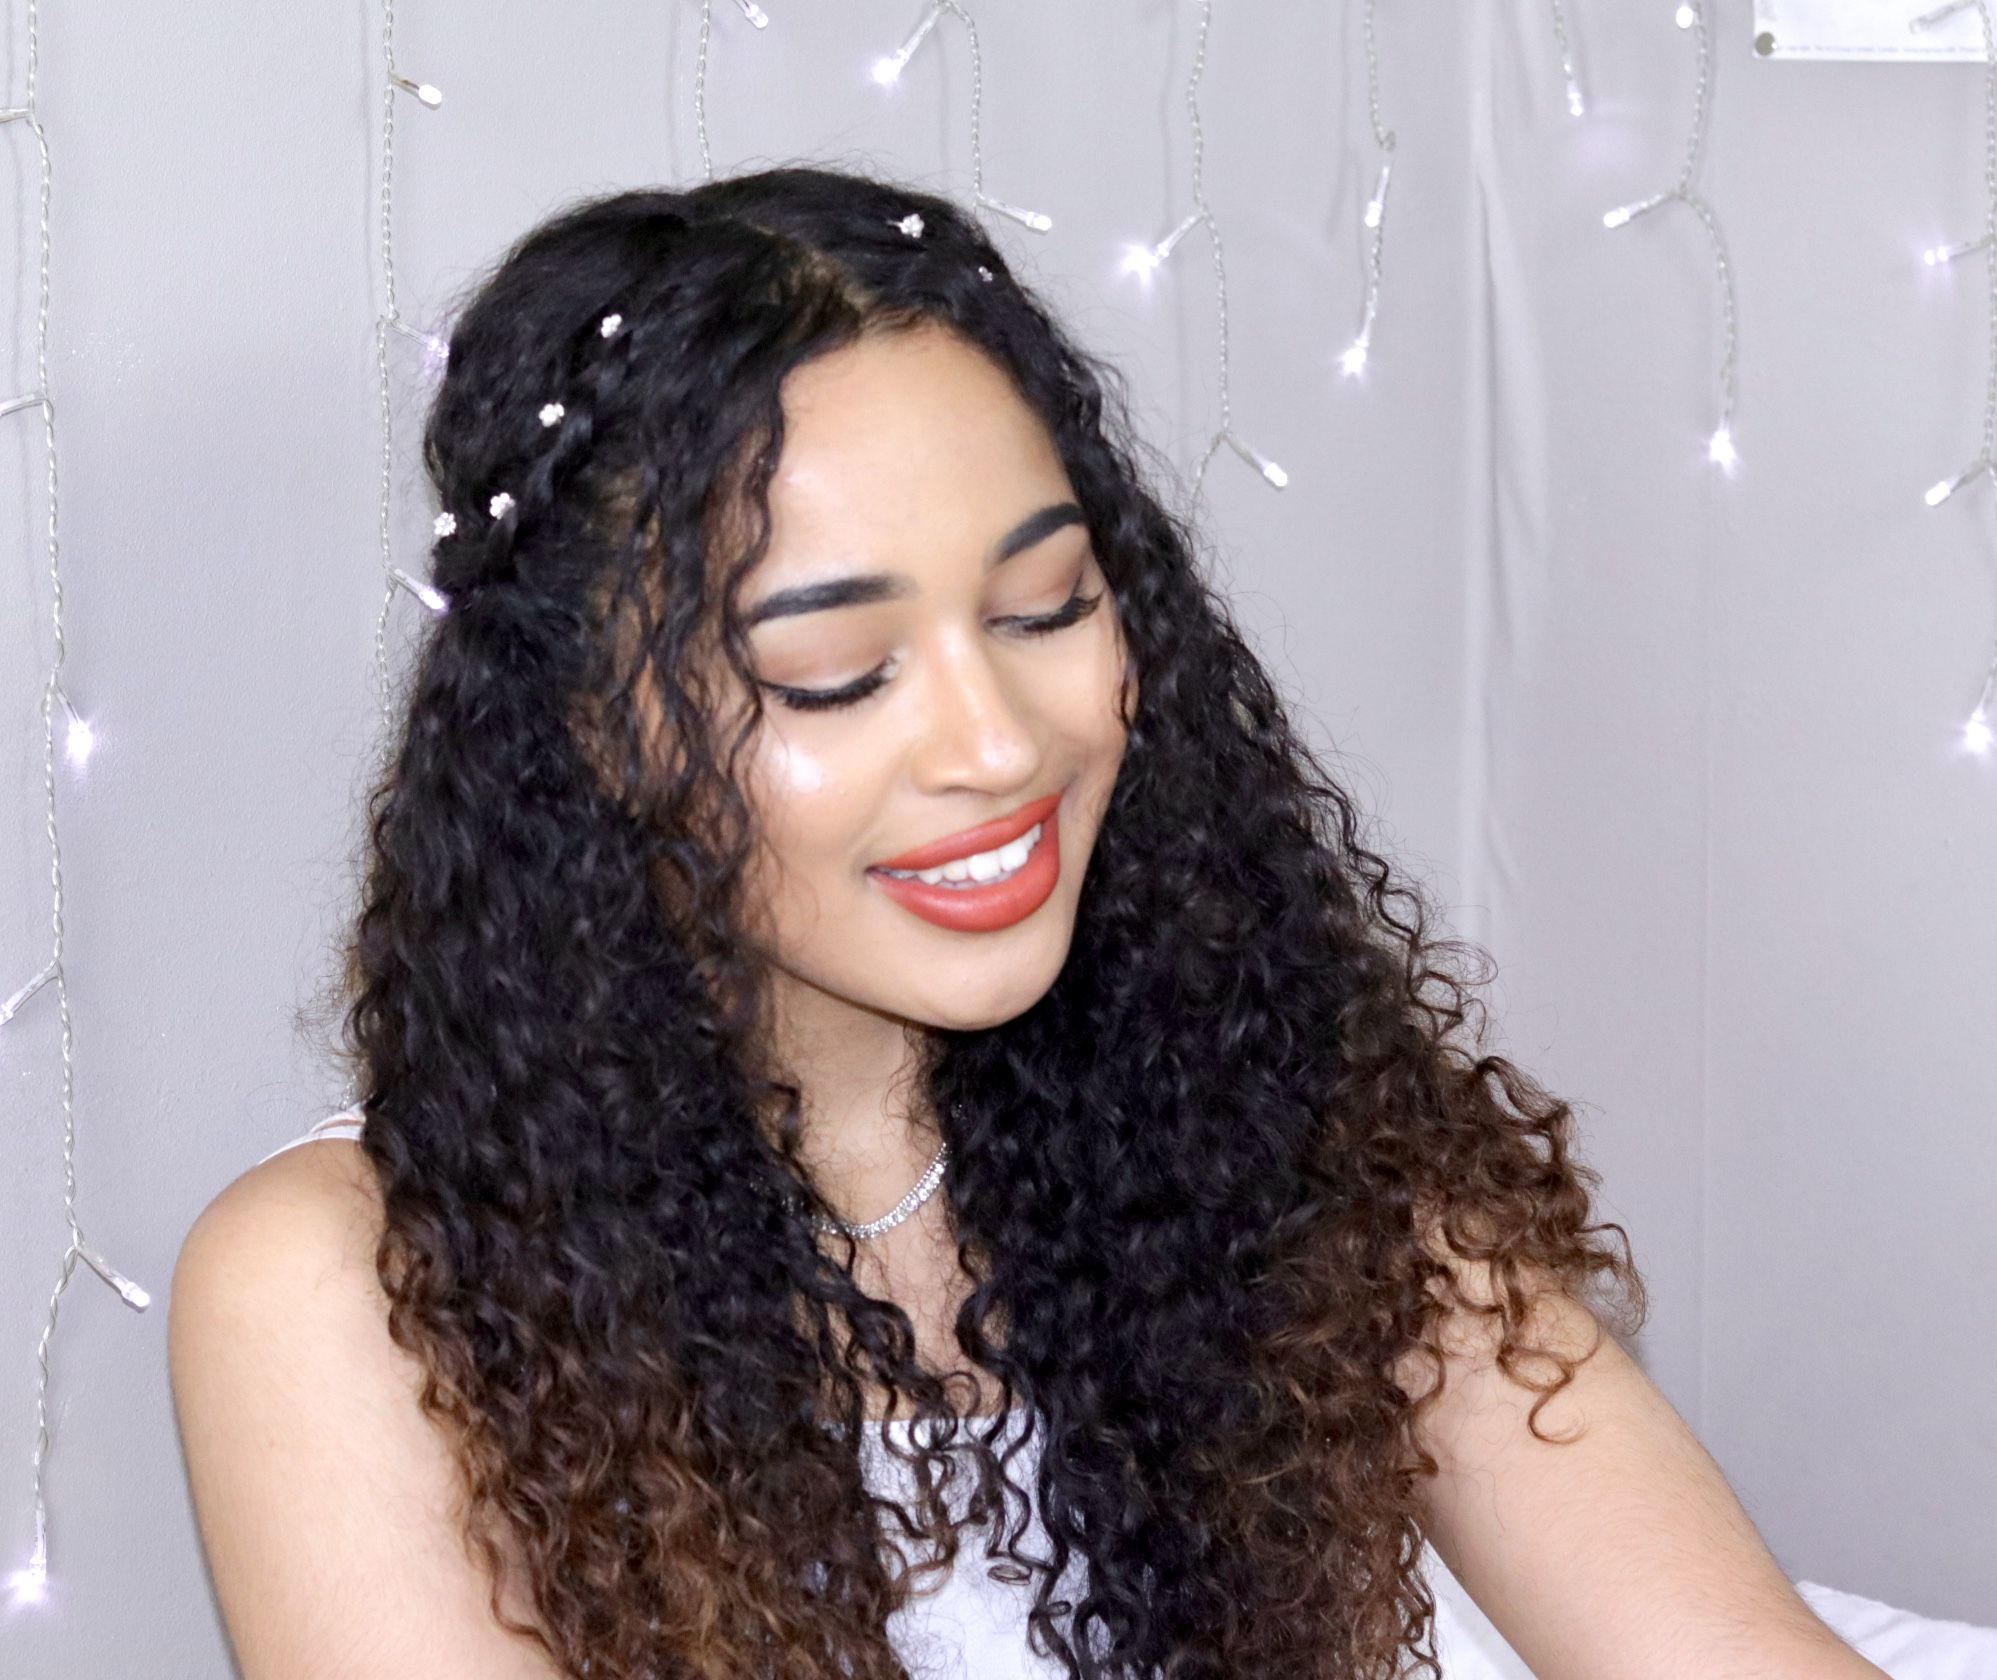 Boho Curly Hairstyles For Prom Weddings Graduation Parties